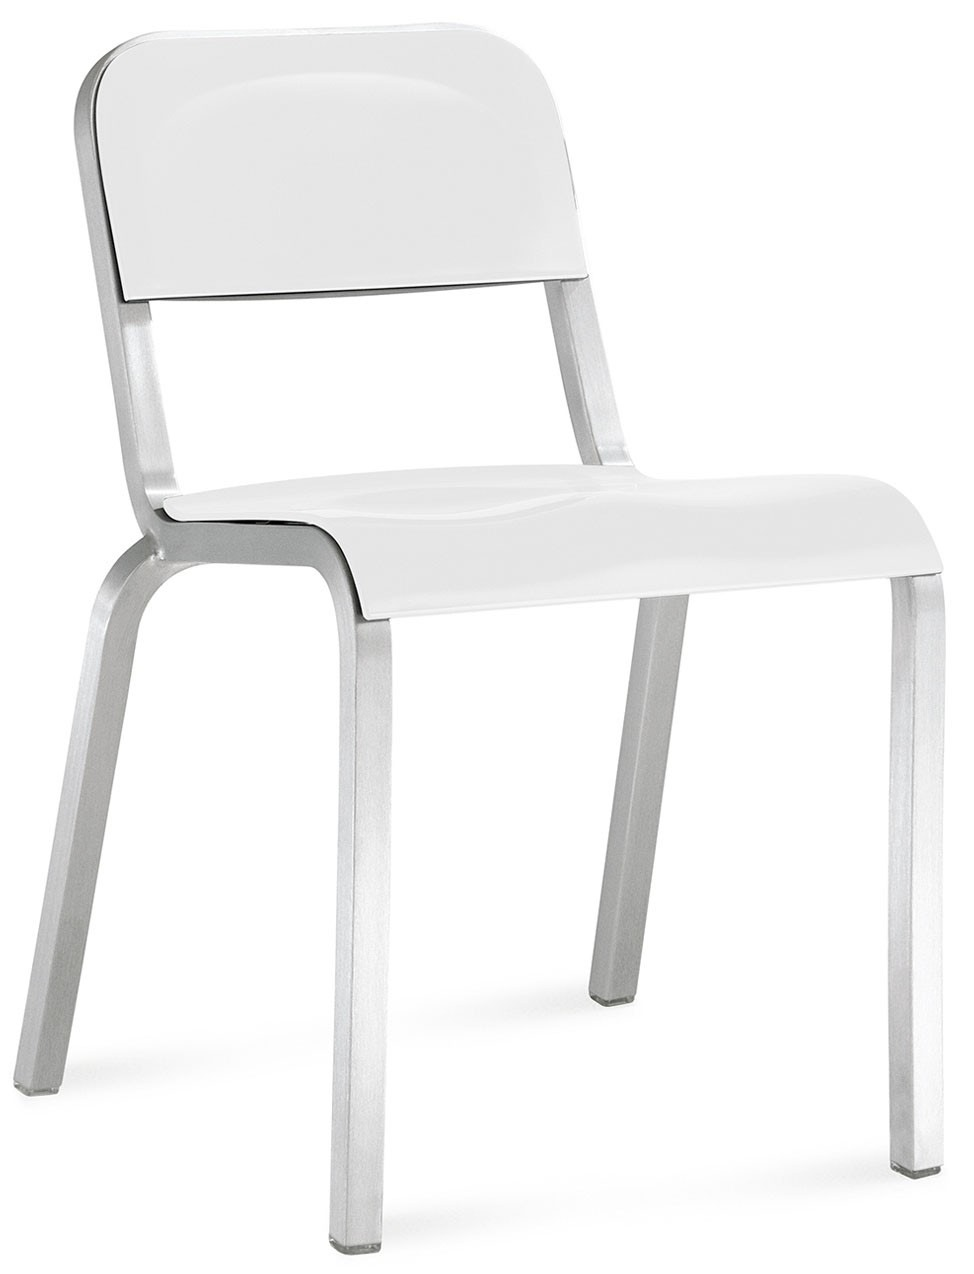 Emeco 1951 Stacking Chair